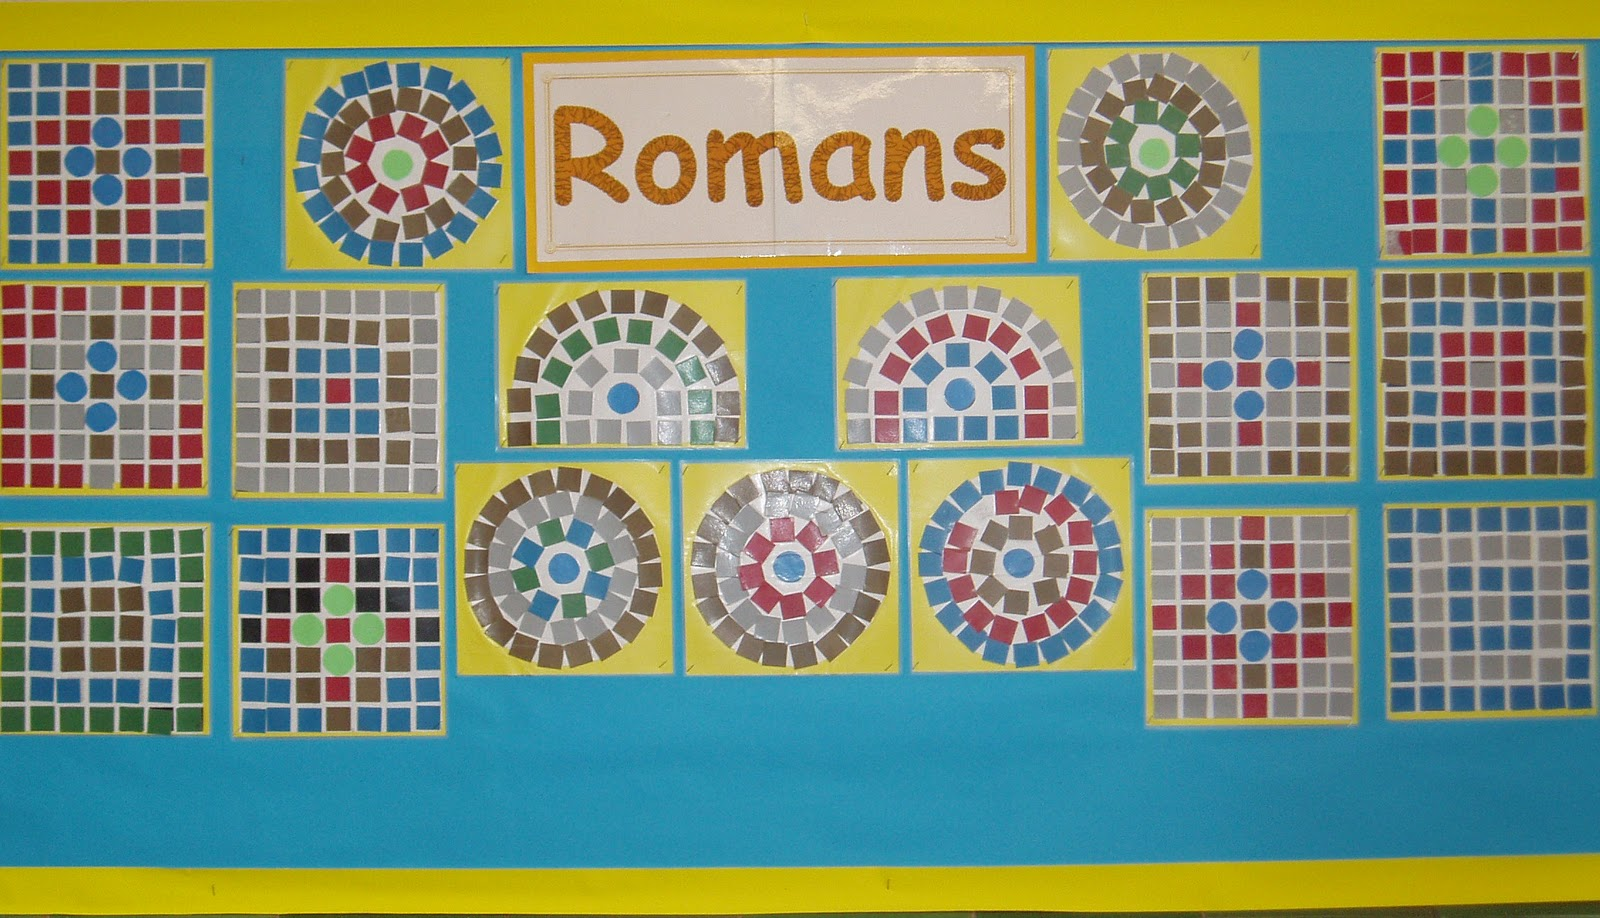 Classroom displays volcanoes and display photos on pinterest for Roman mosaic templates for kids